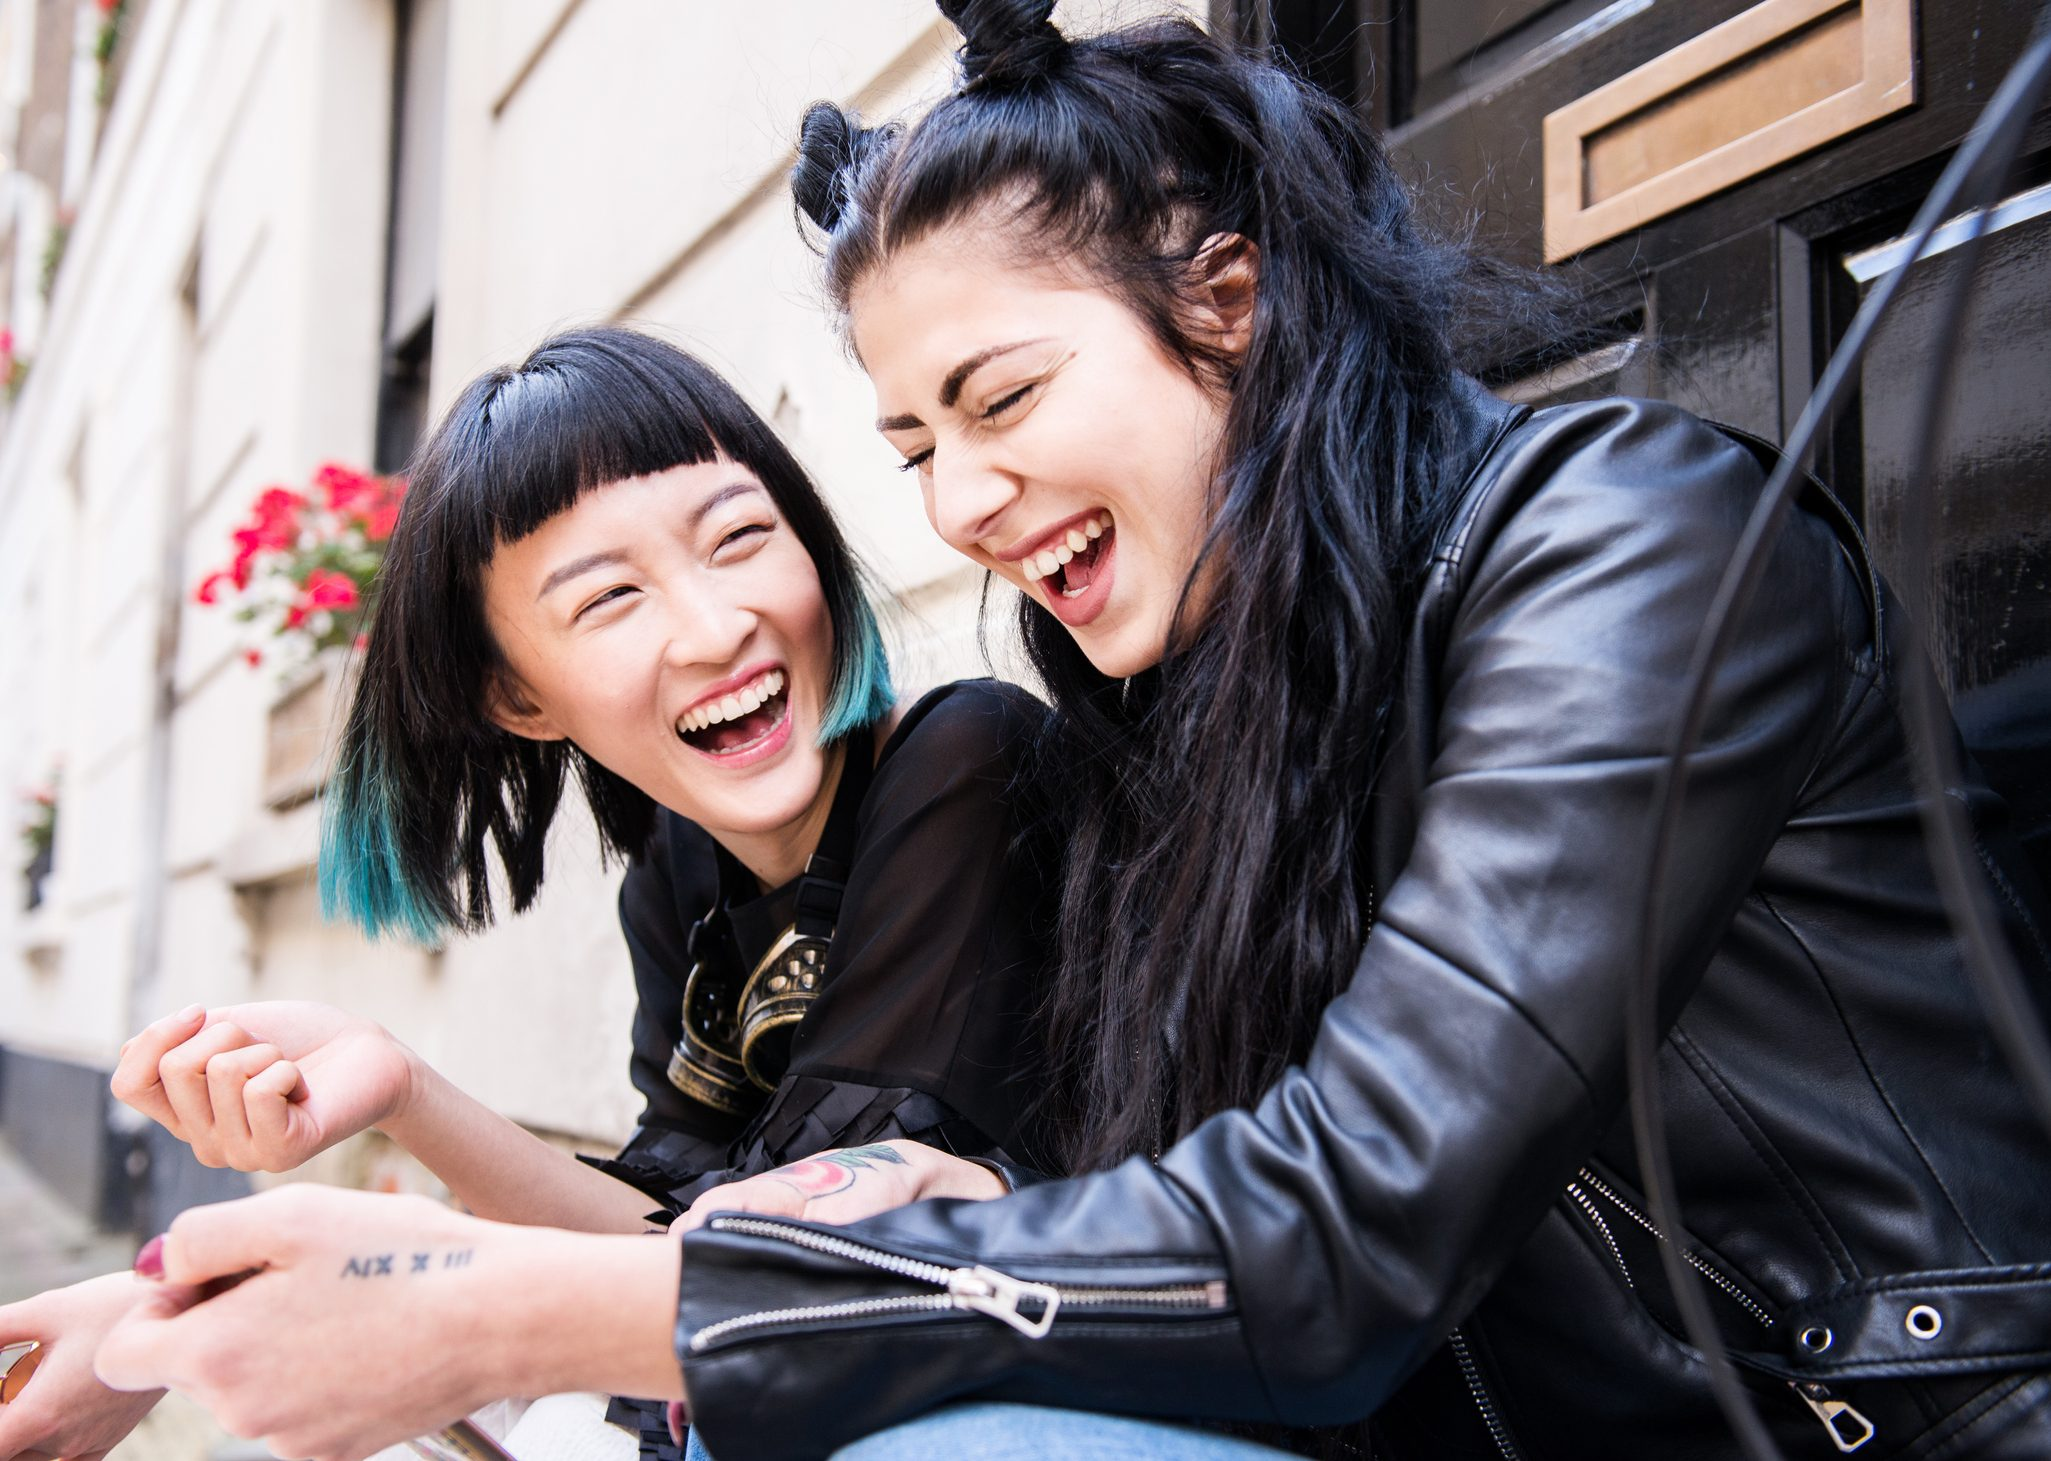 Two young stylish female friends sitting doorstep laughing